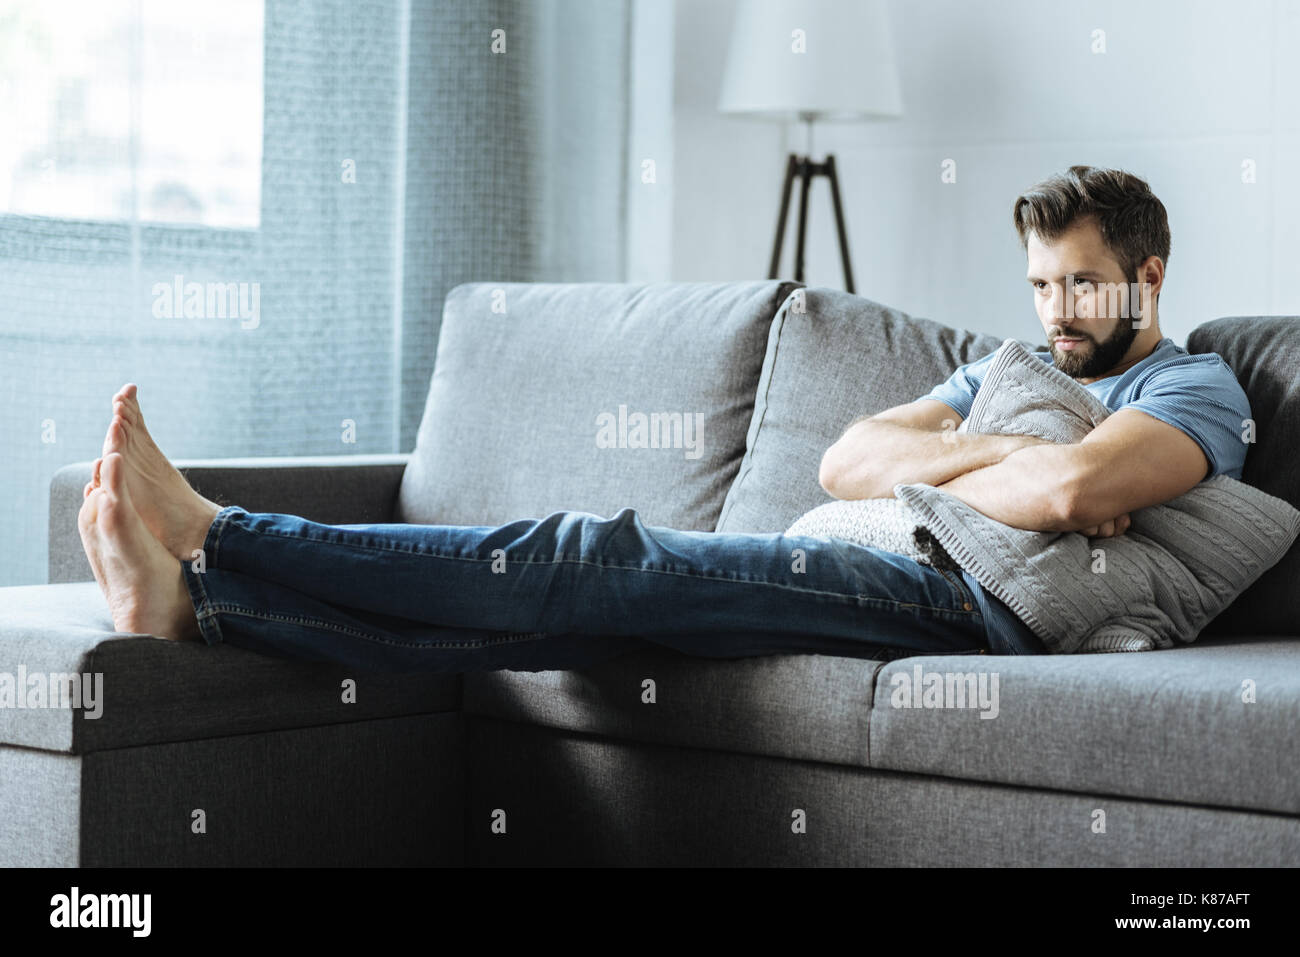 Unhappy depressed man holding a cushion - Stock Image